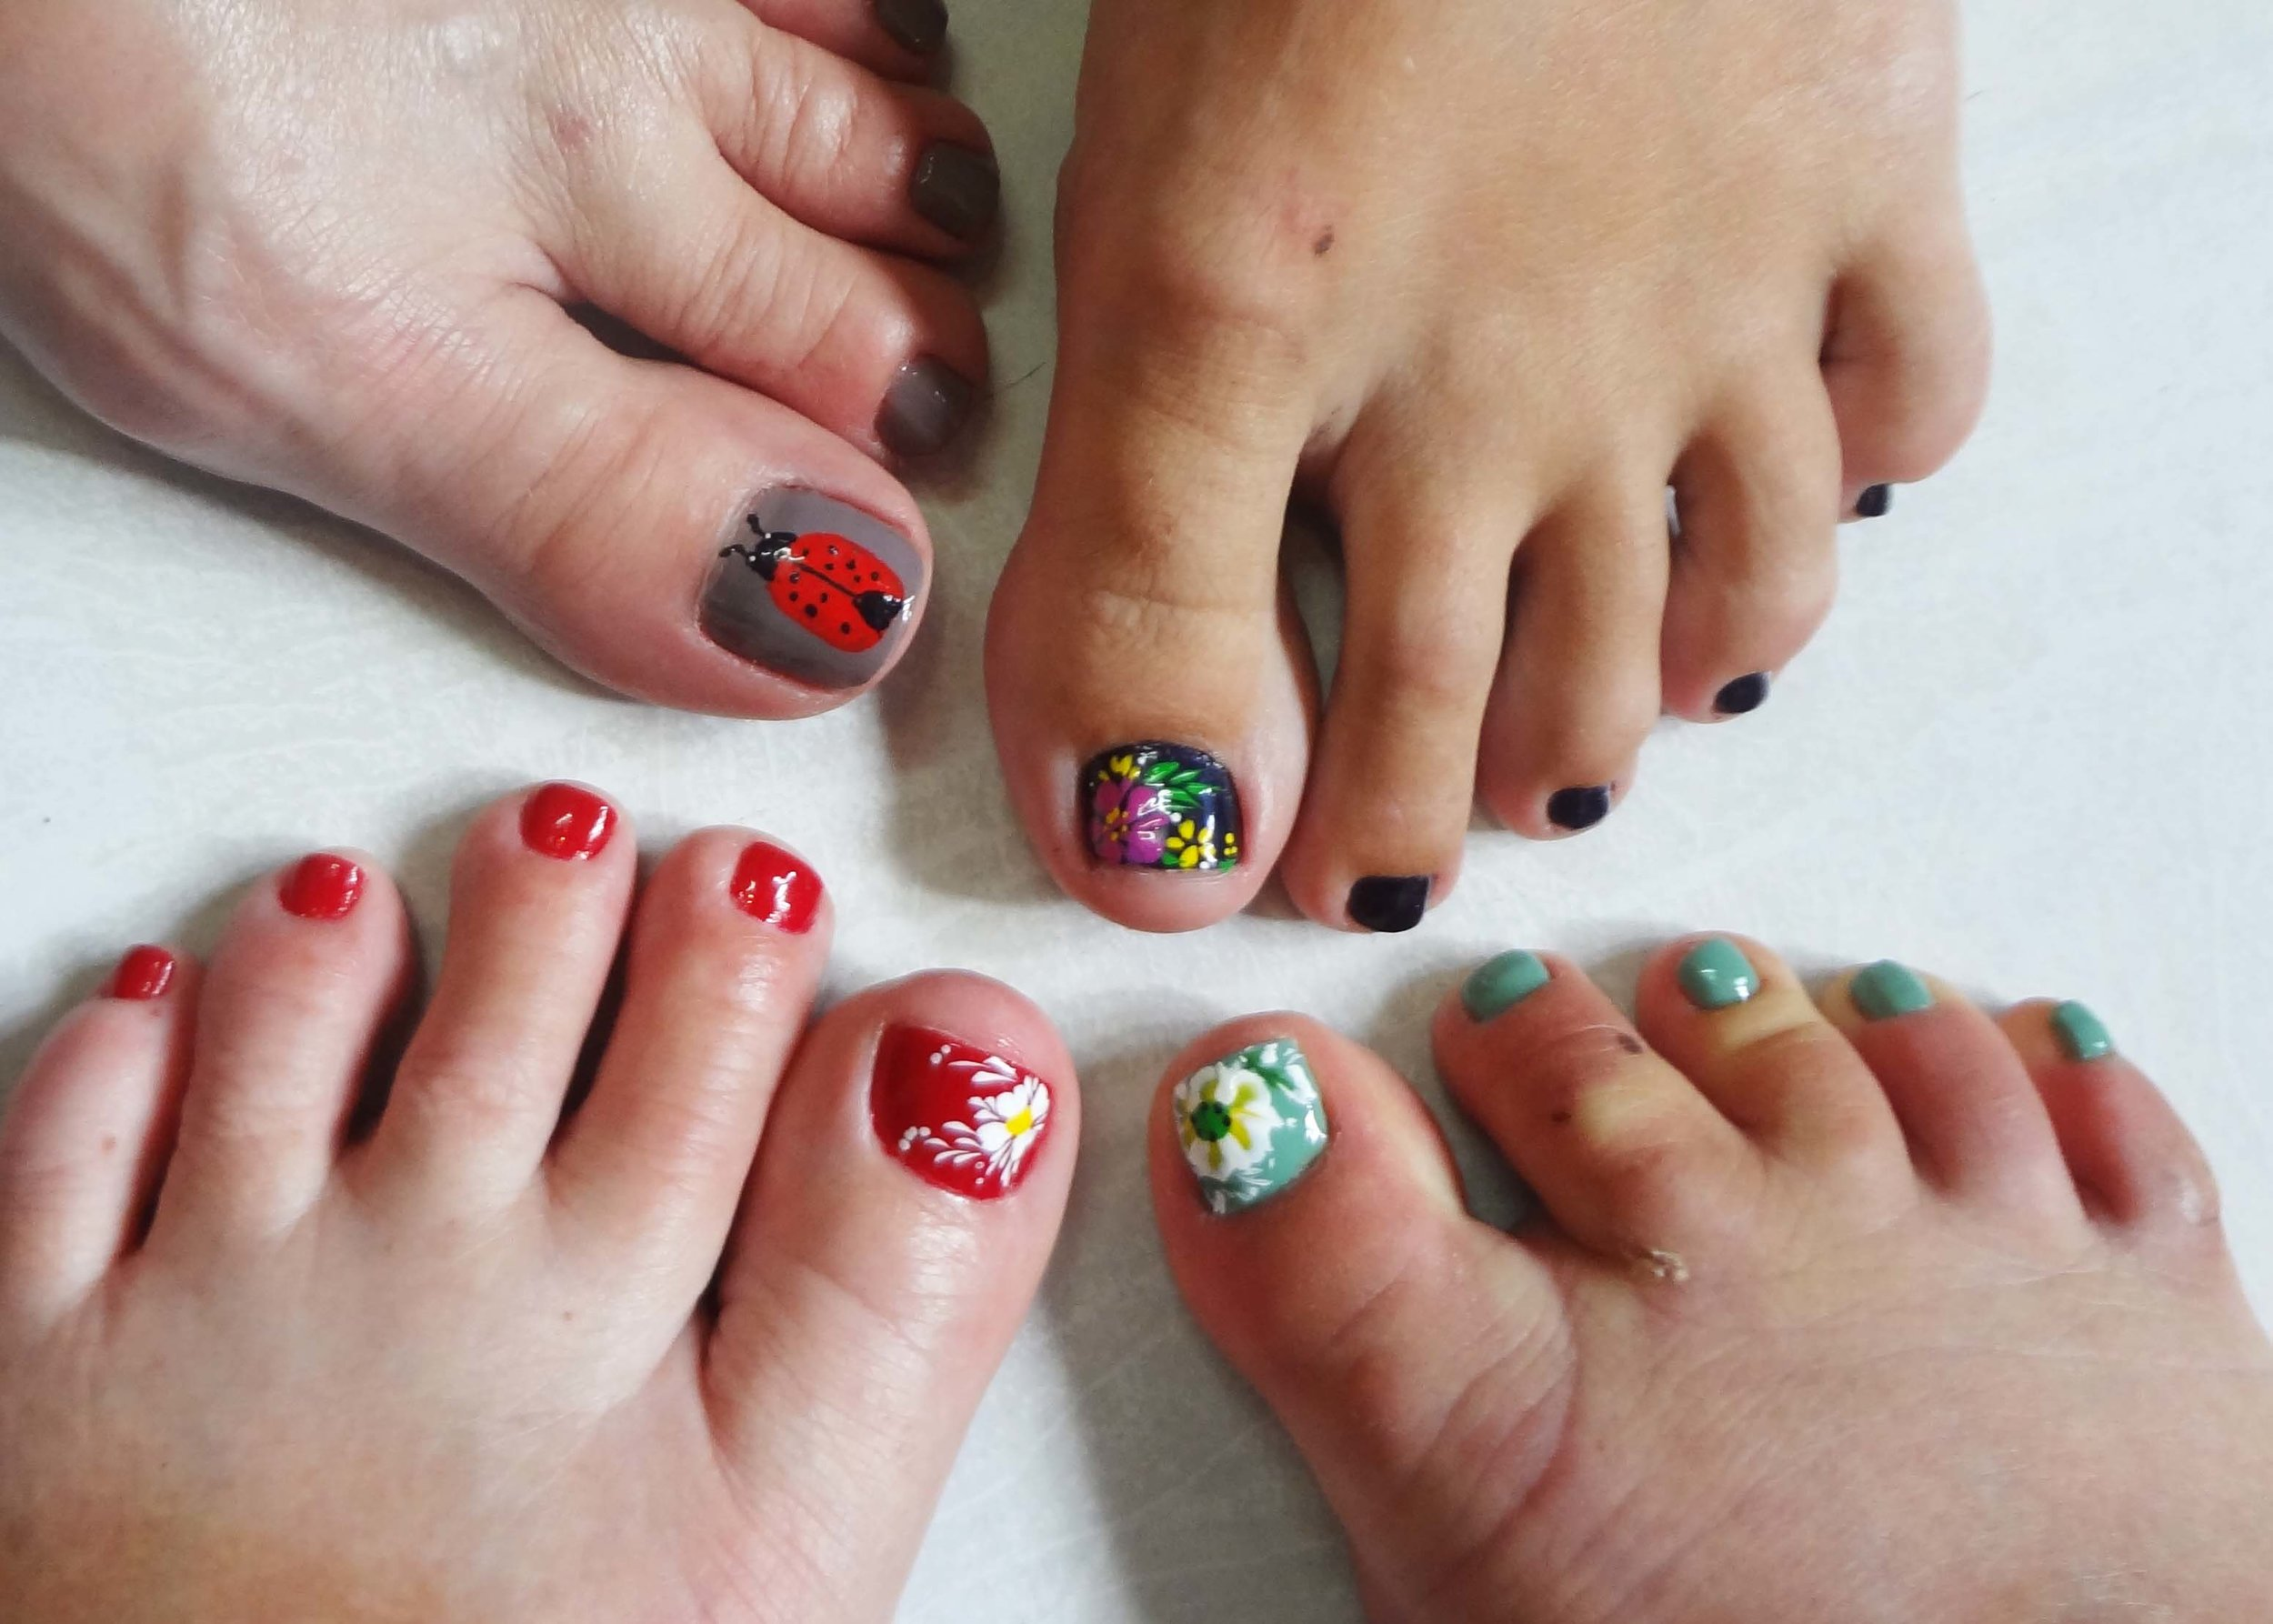 Manicures and pedicures in Ho Chi Minh City